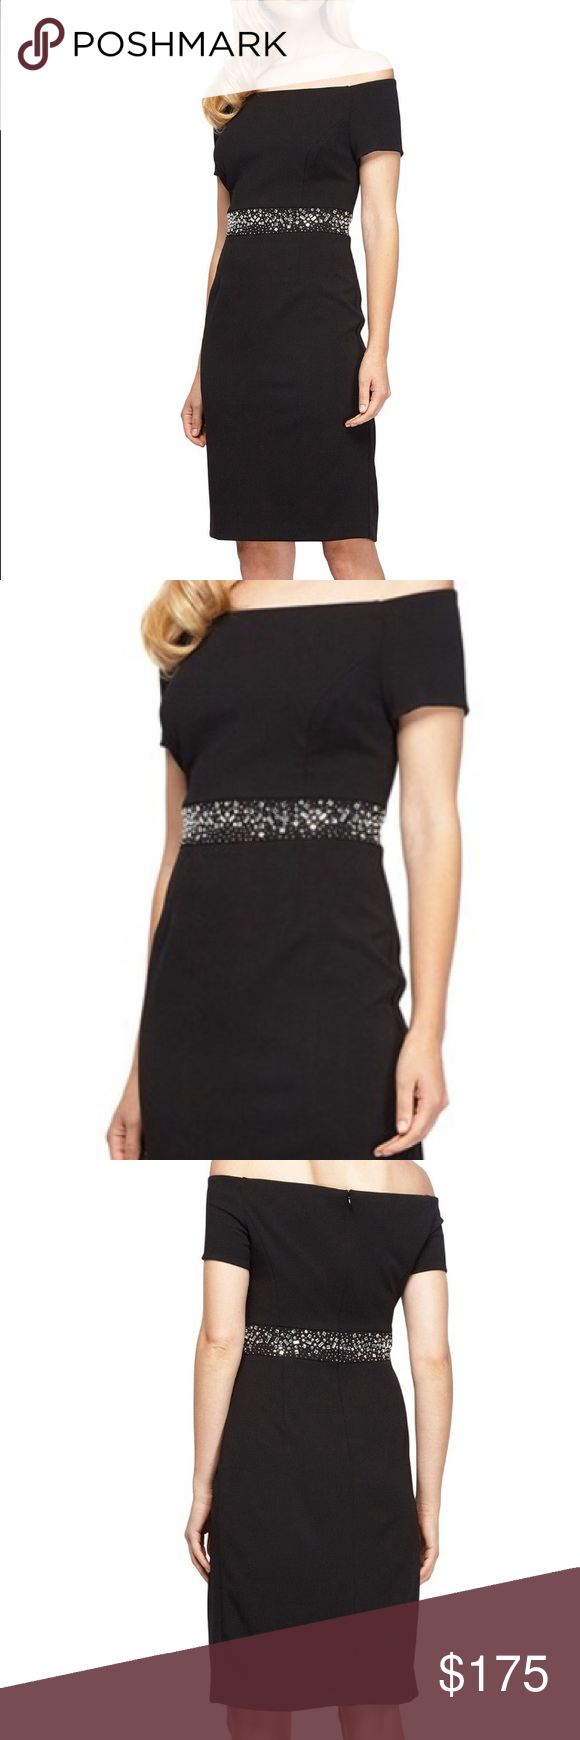 BNWT Alex Evenings Dress See above description. Black. Stretchy material. Zipper in the back. Embellished beading around waist. Brand new with tags. Purchased from Nordstrom. Never worn. Alex Evenings Dresses